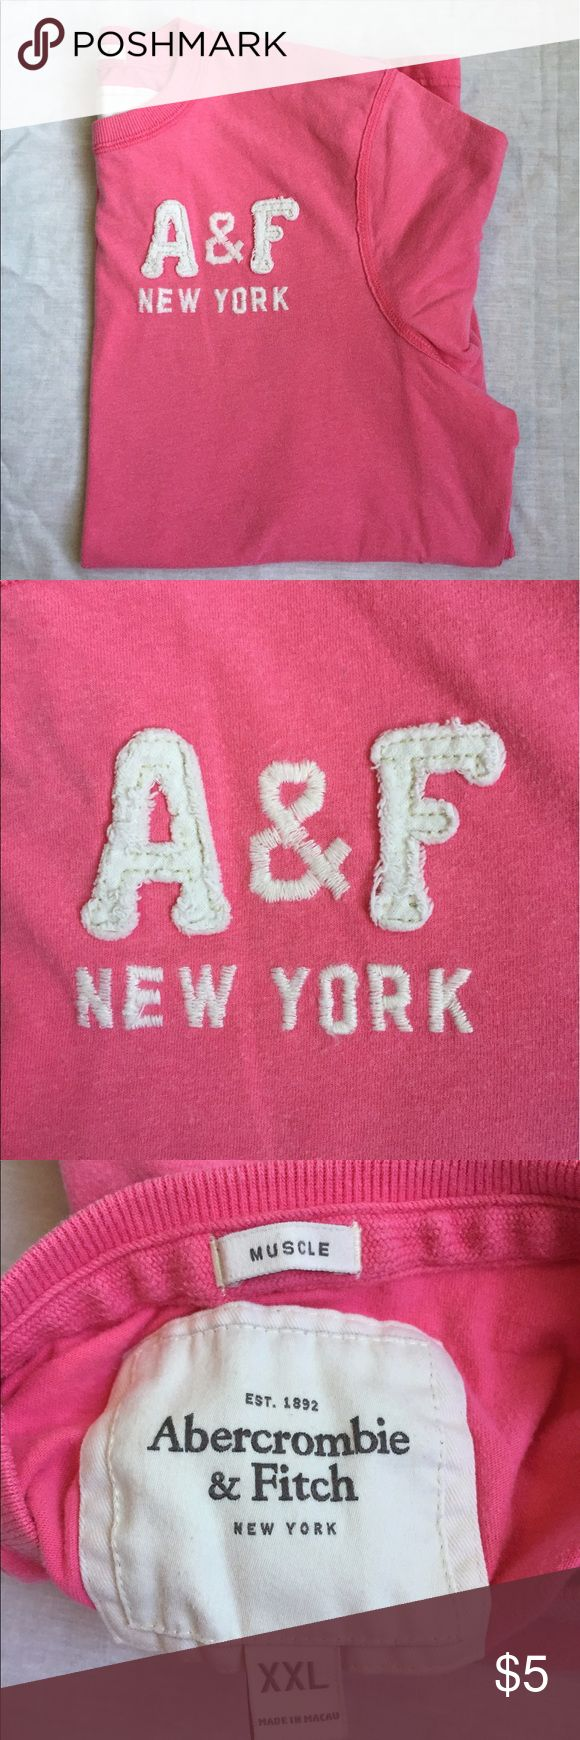 Abercrombie & Fitch Pink Shirt Abercrombie & Fitch Pink T shirt. Size XXL but seems more like a large/XL Abercrombie & Fitch Shirts Tees - Short Sleeve